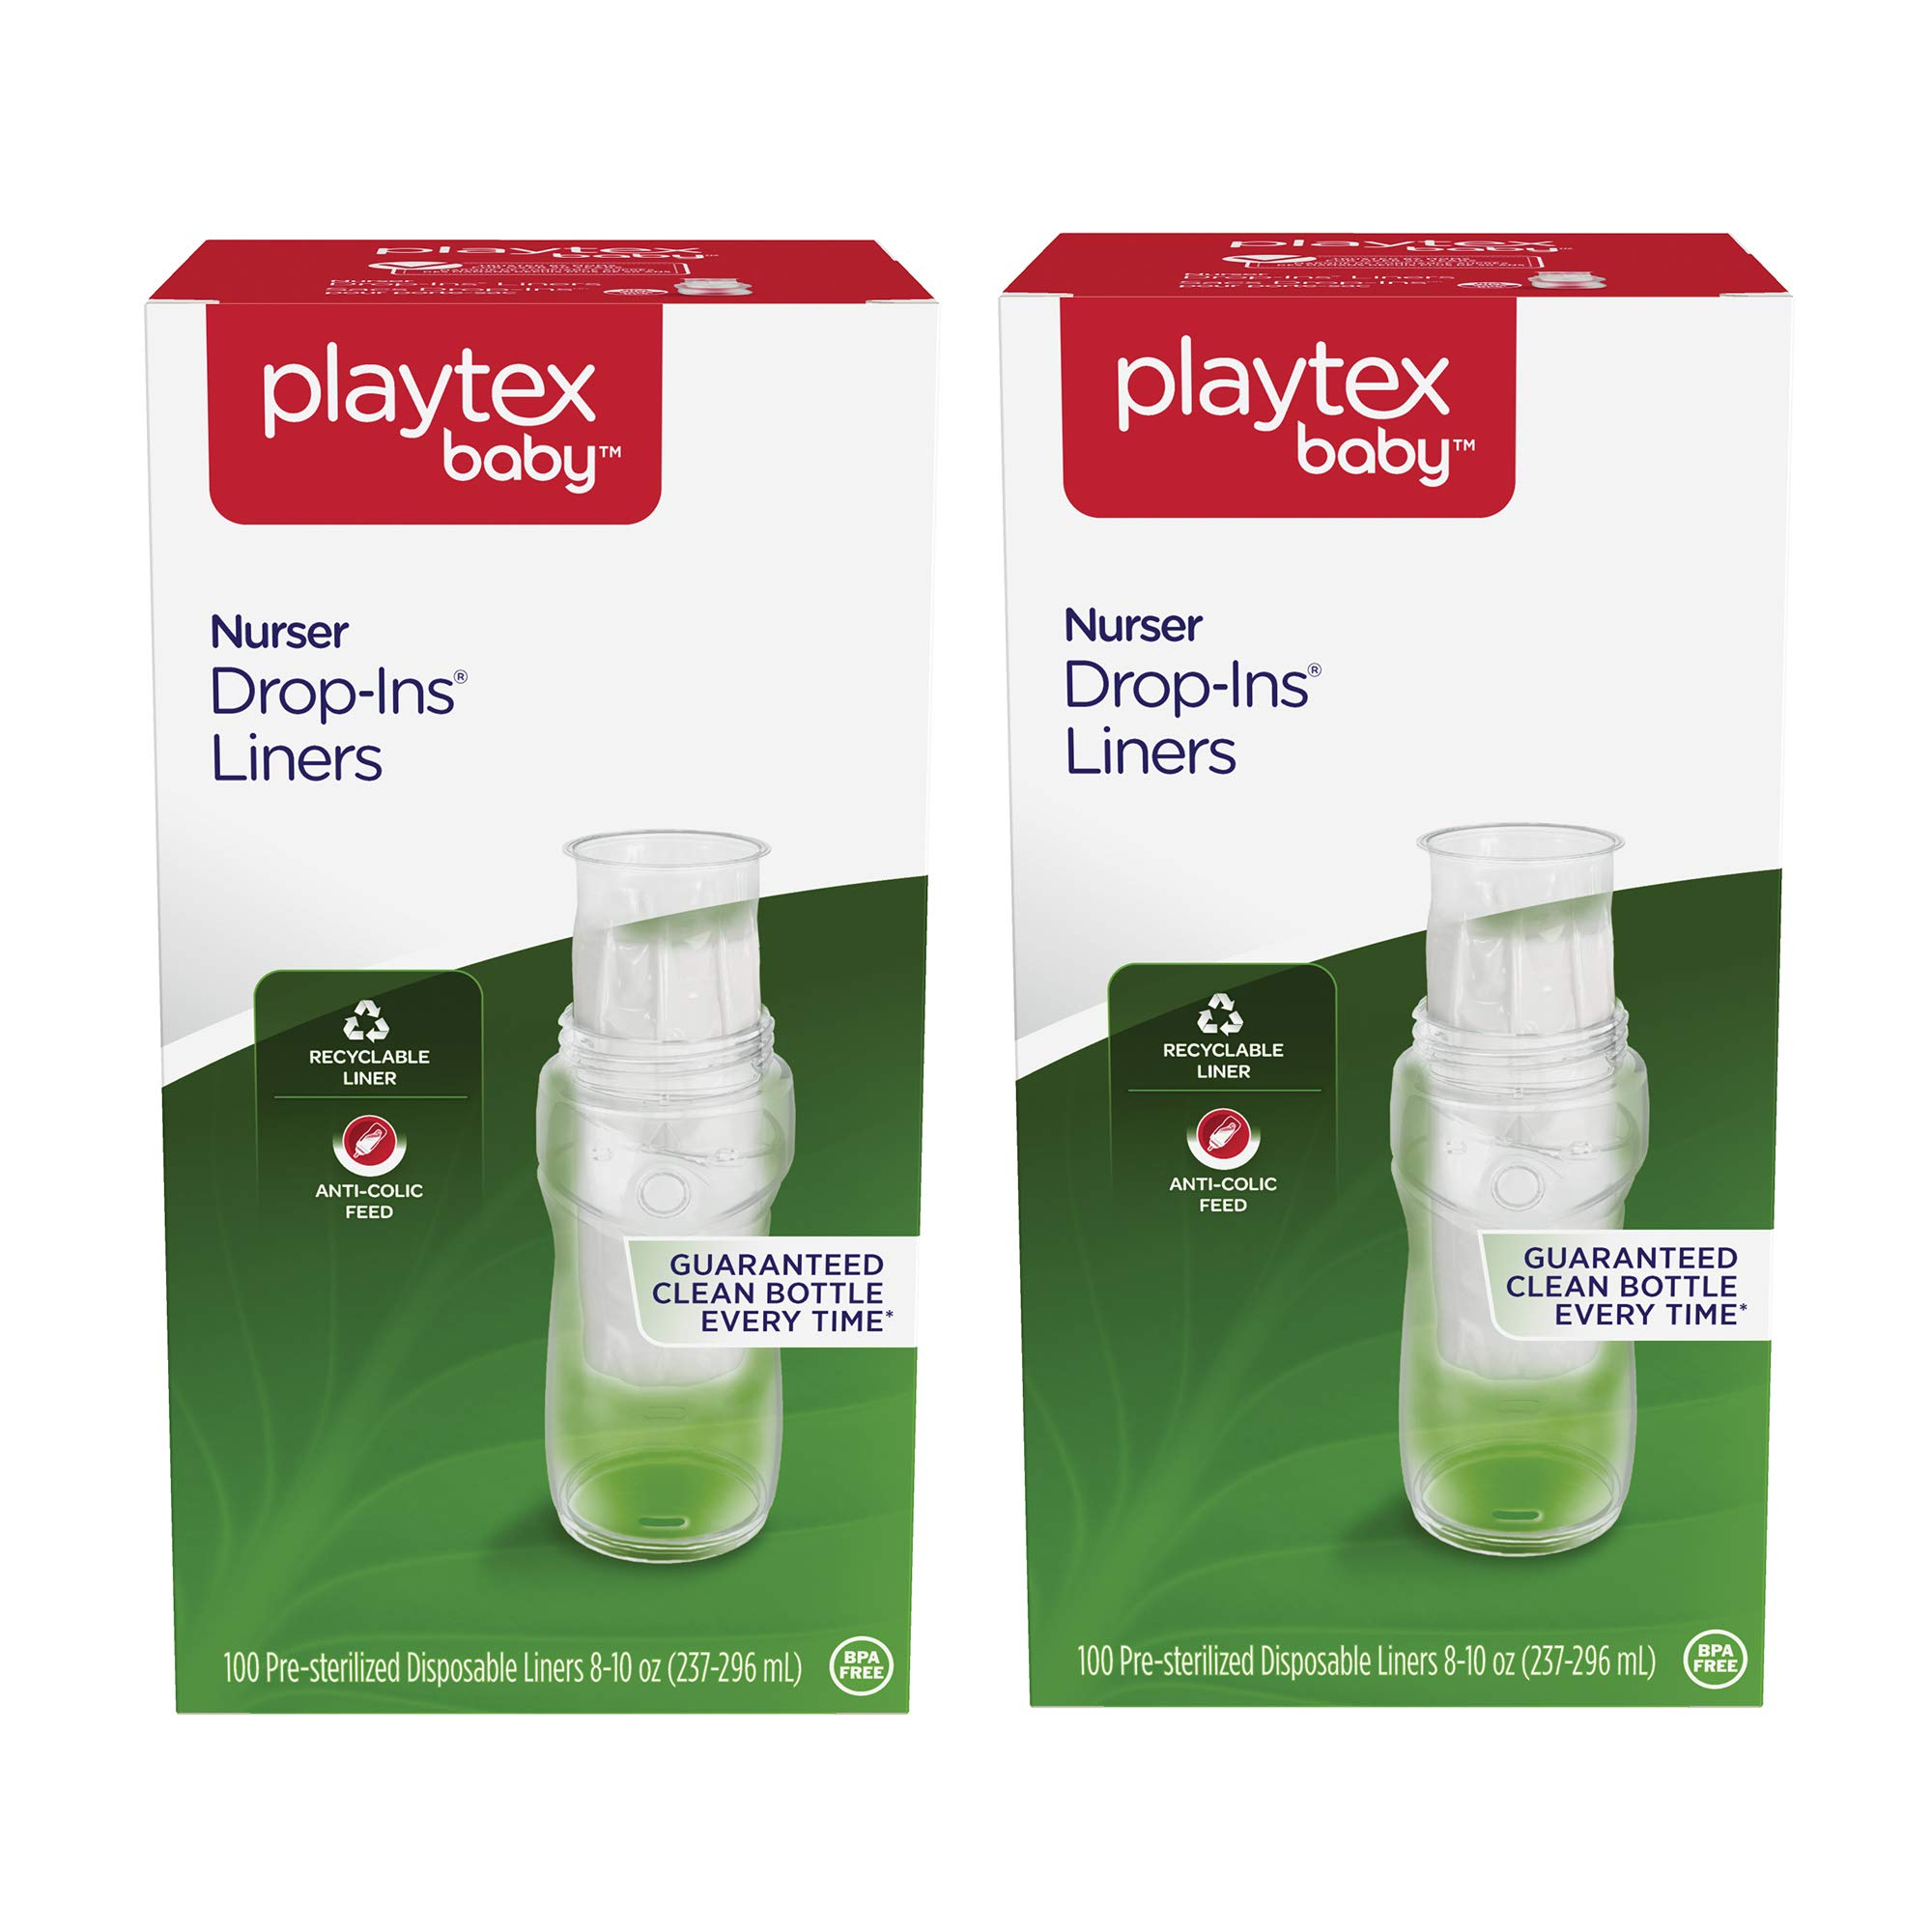 Playtex Baby Nurser Drop-Ins Baby Bottle Disposable Liners, Closer to Breastfeeding, 8 oz, 200 Count by Playtex